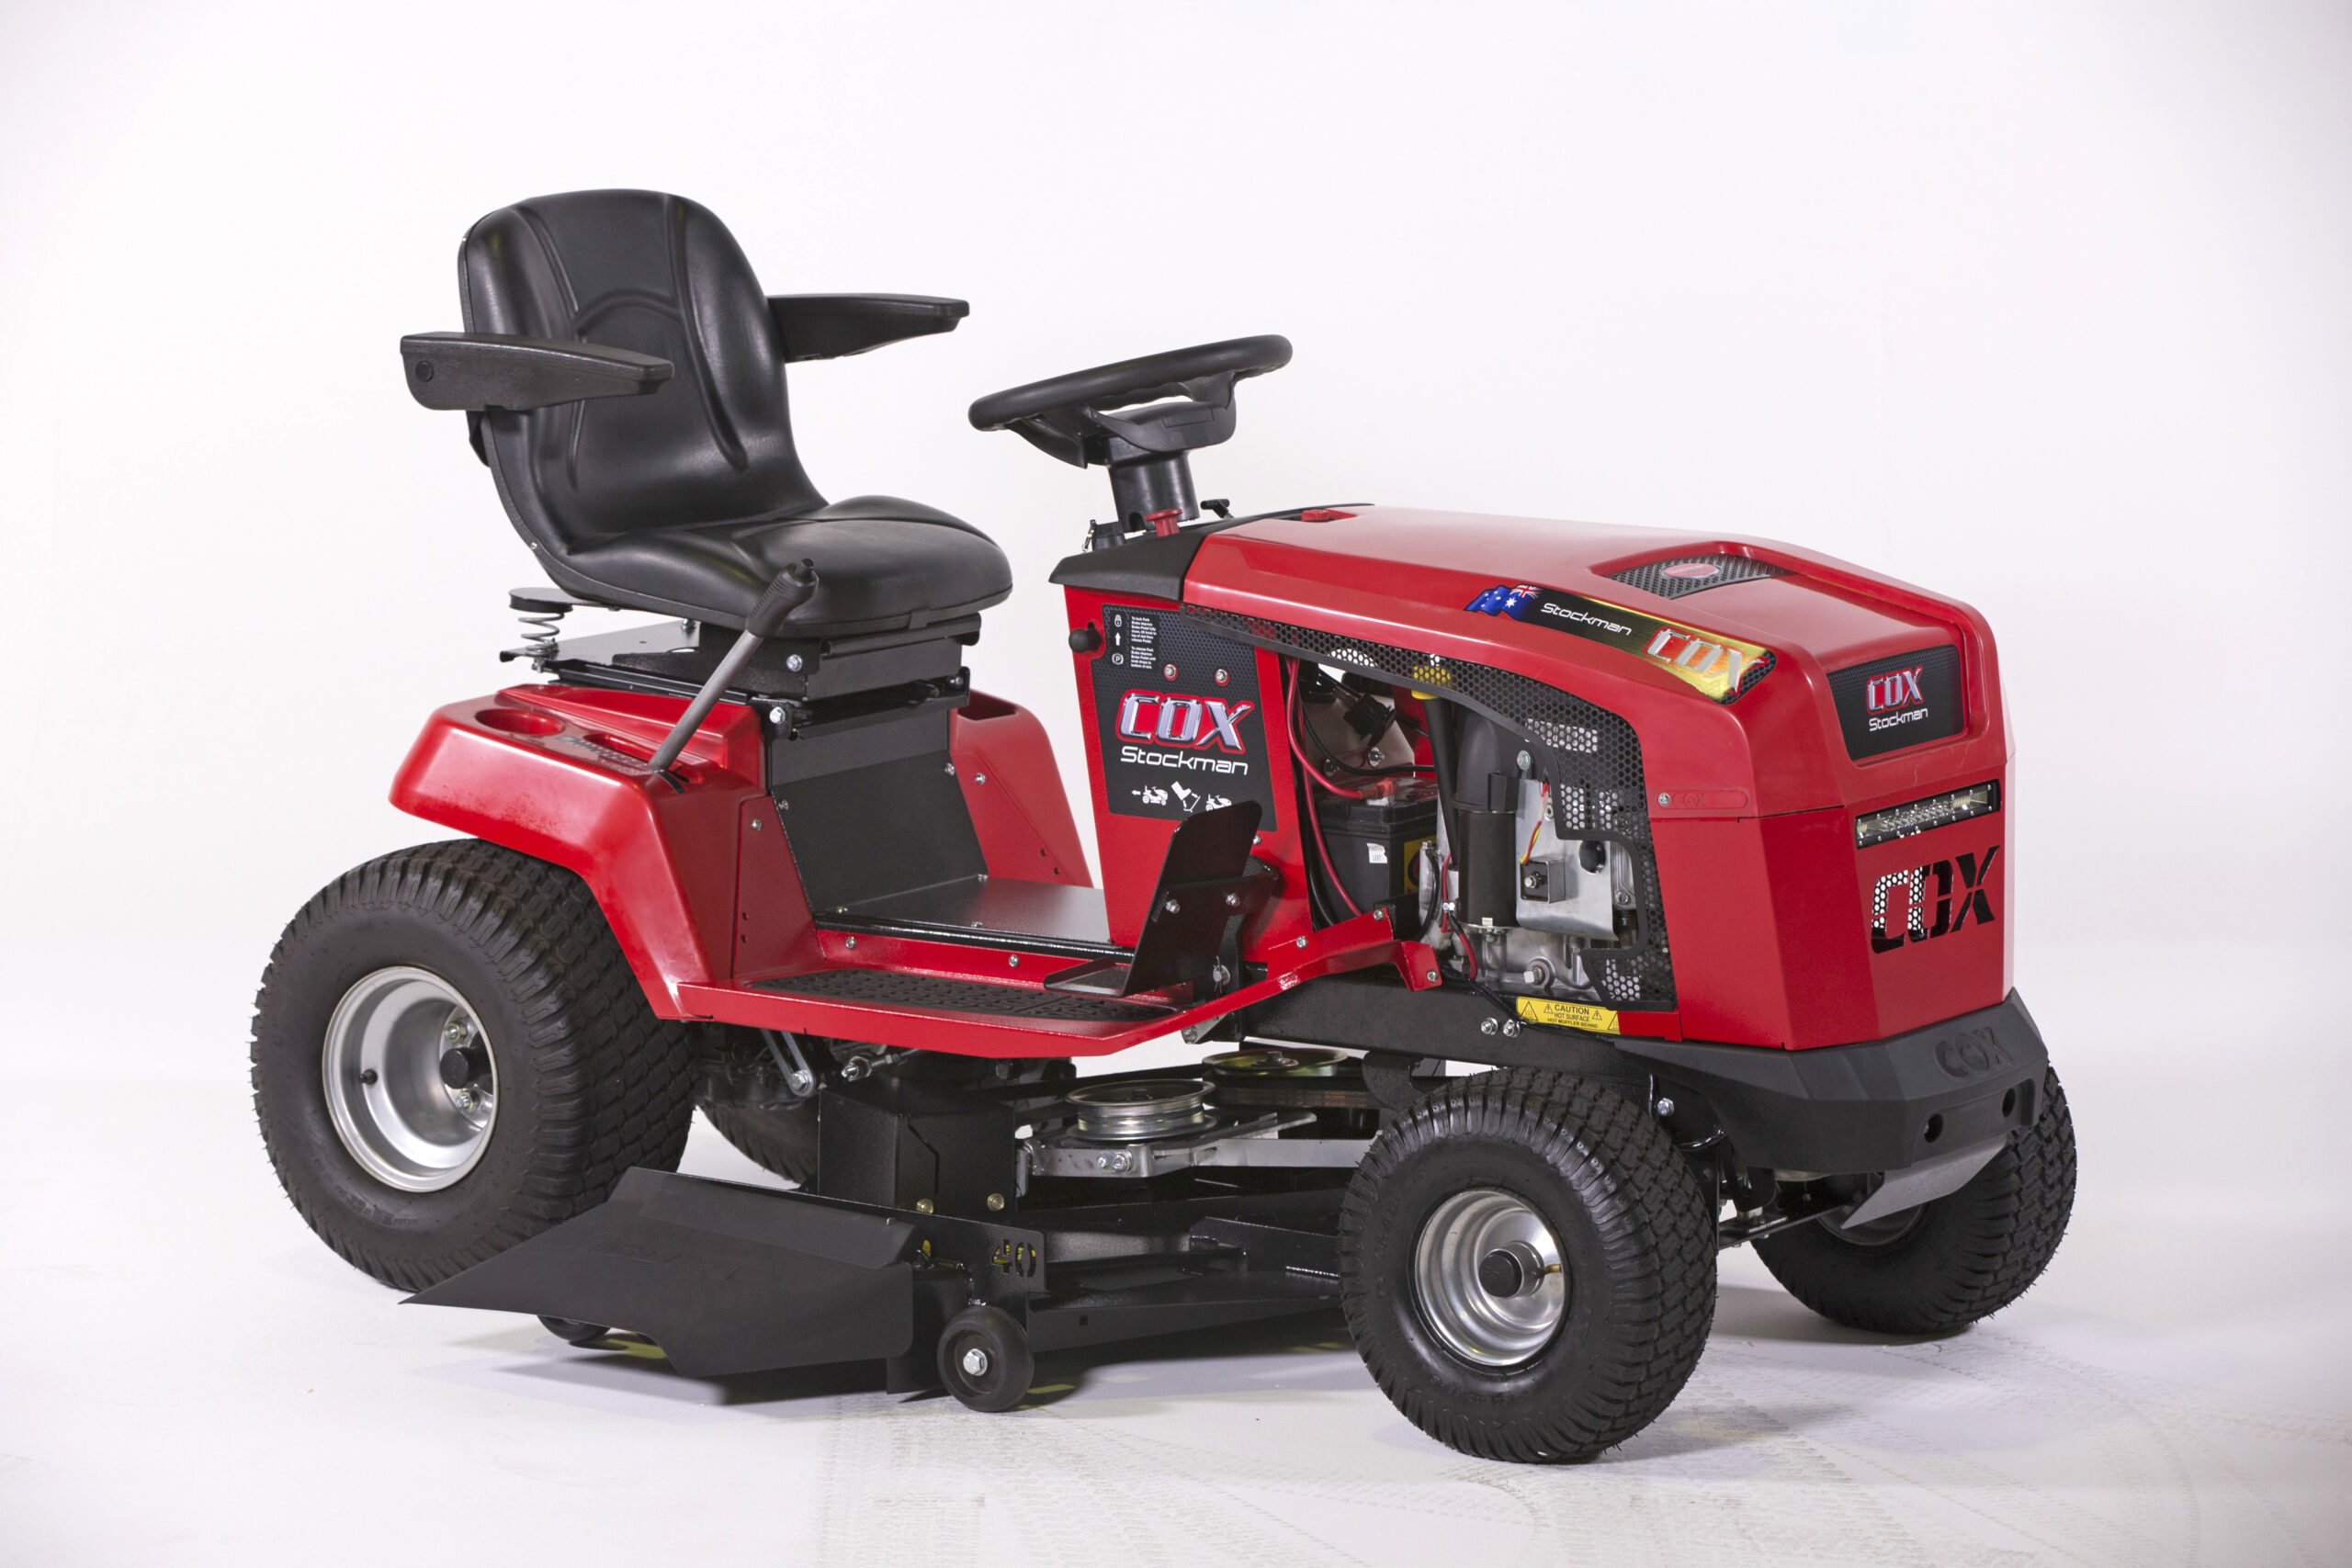 Image of the Cox Stockman Pro CTL20B35 Ride on Lawn Mower